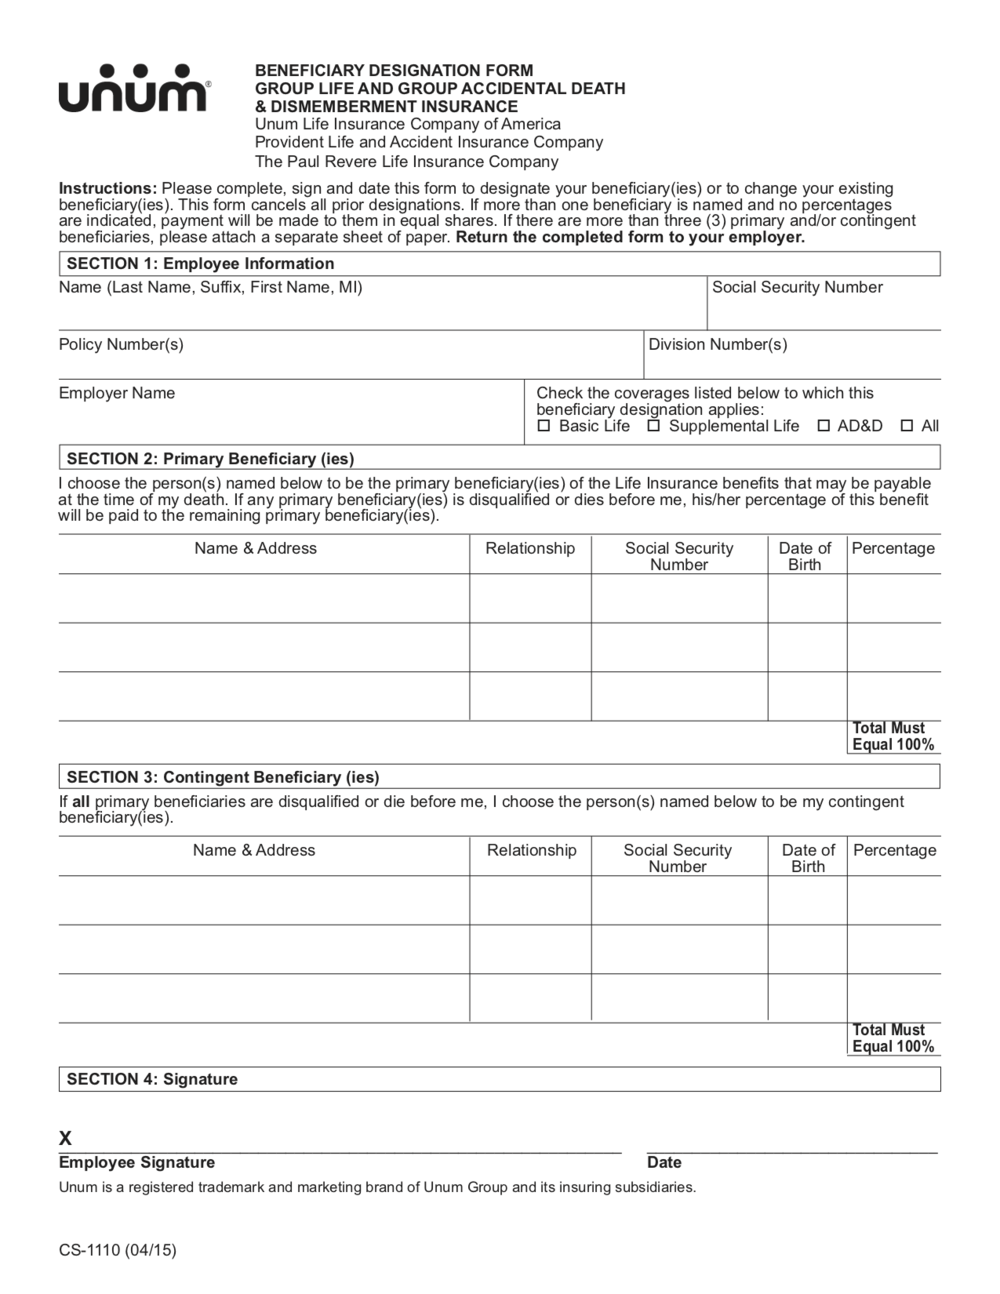 Beneficiary Designation Form